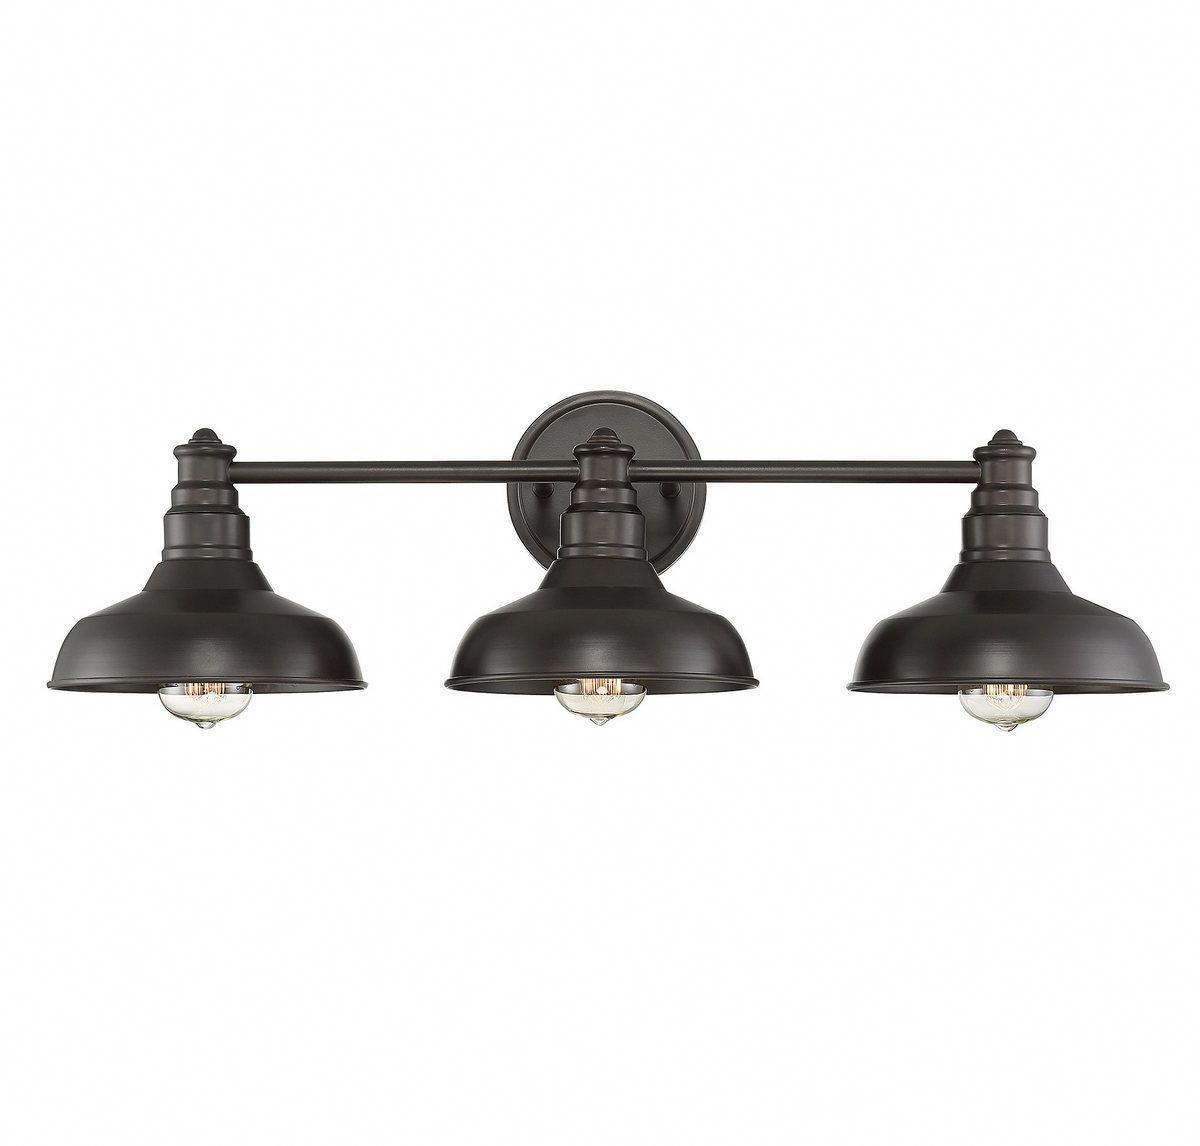 Trade Winds Vintage 3 Light Bathroom Vanity Light In Oil Rubbed Bronze In 2020 Bronze Bathroom Bathroom Vanity Lighting Oil Rubbed Bronze Bathroom